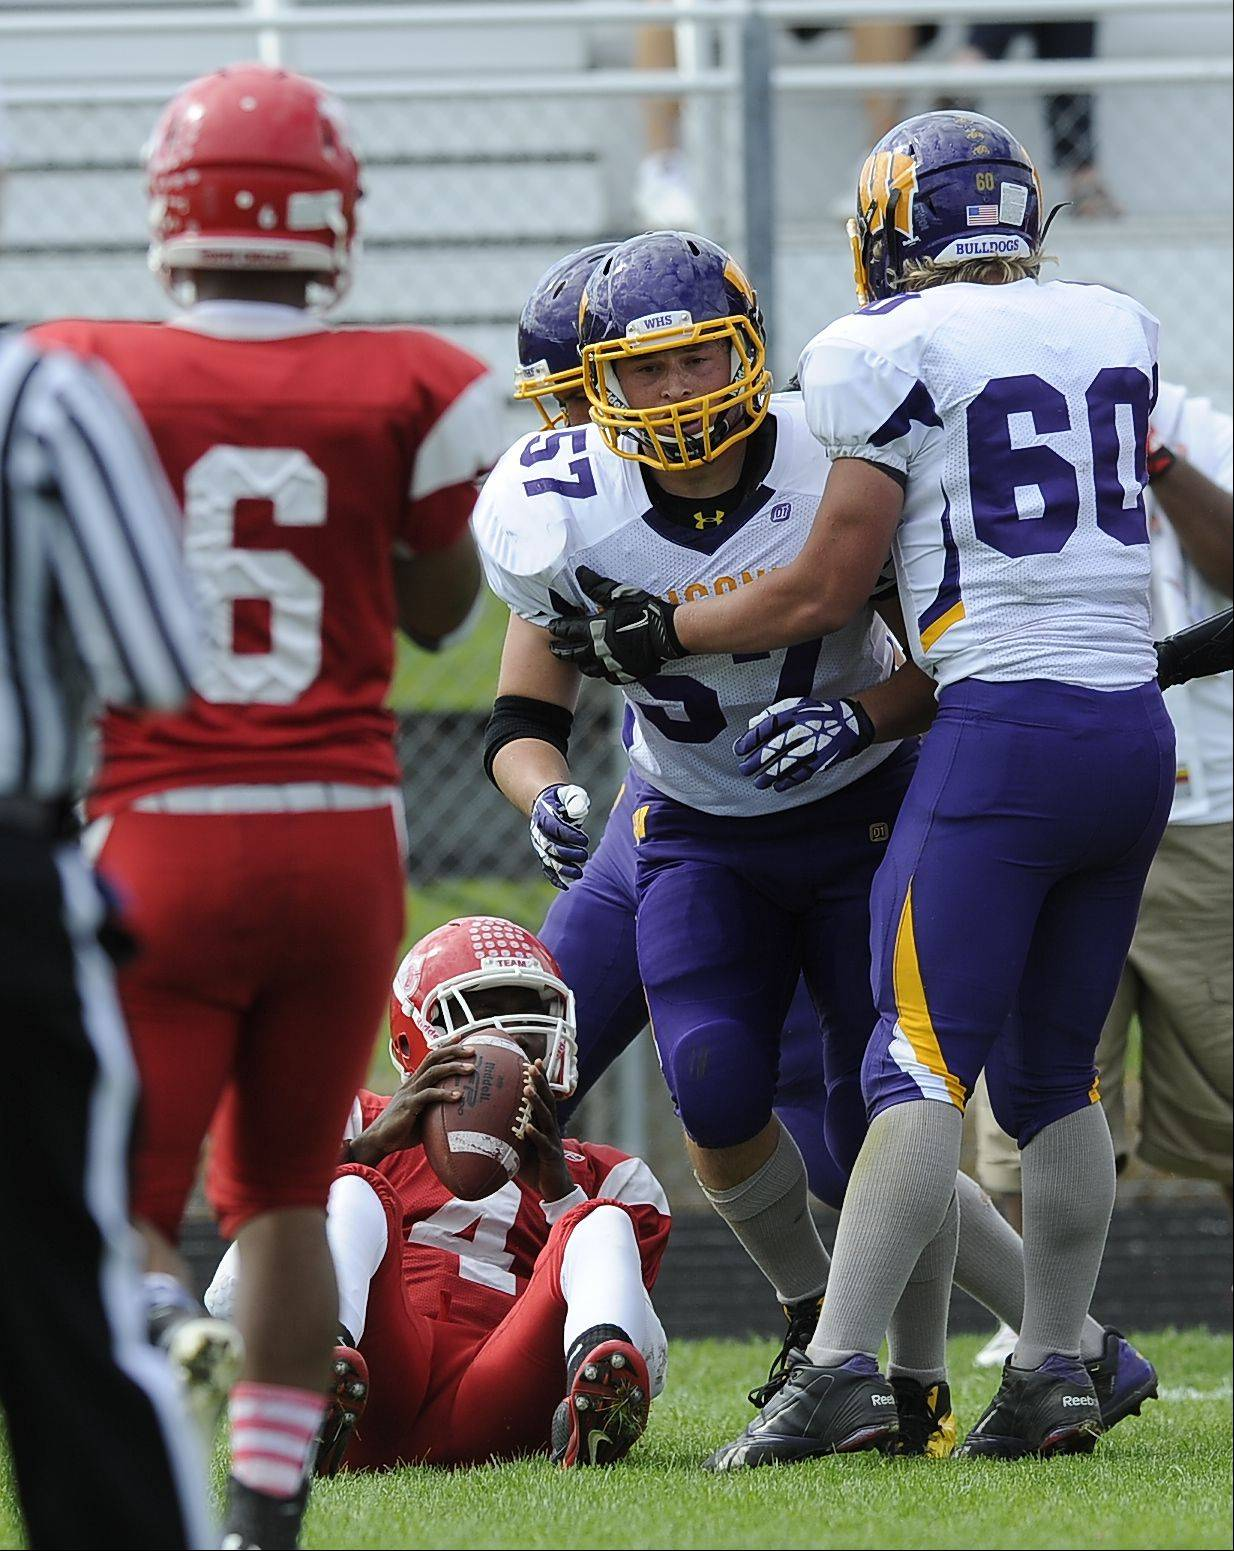 Week -4- Photos from the Wauconda at North Chicago football game on Saturday, Sept. 21.